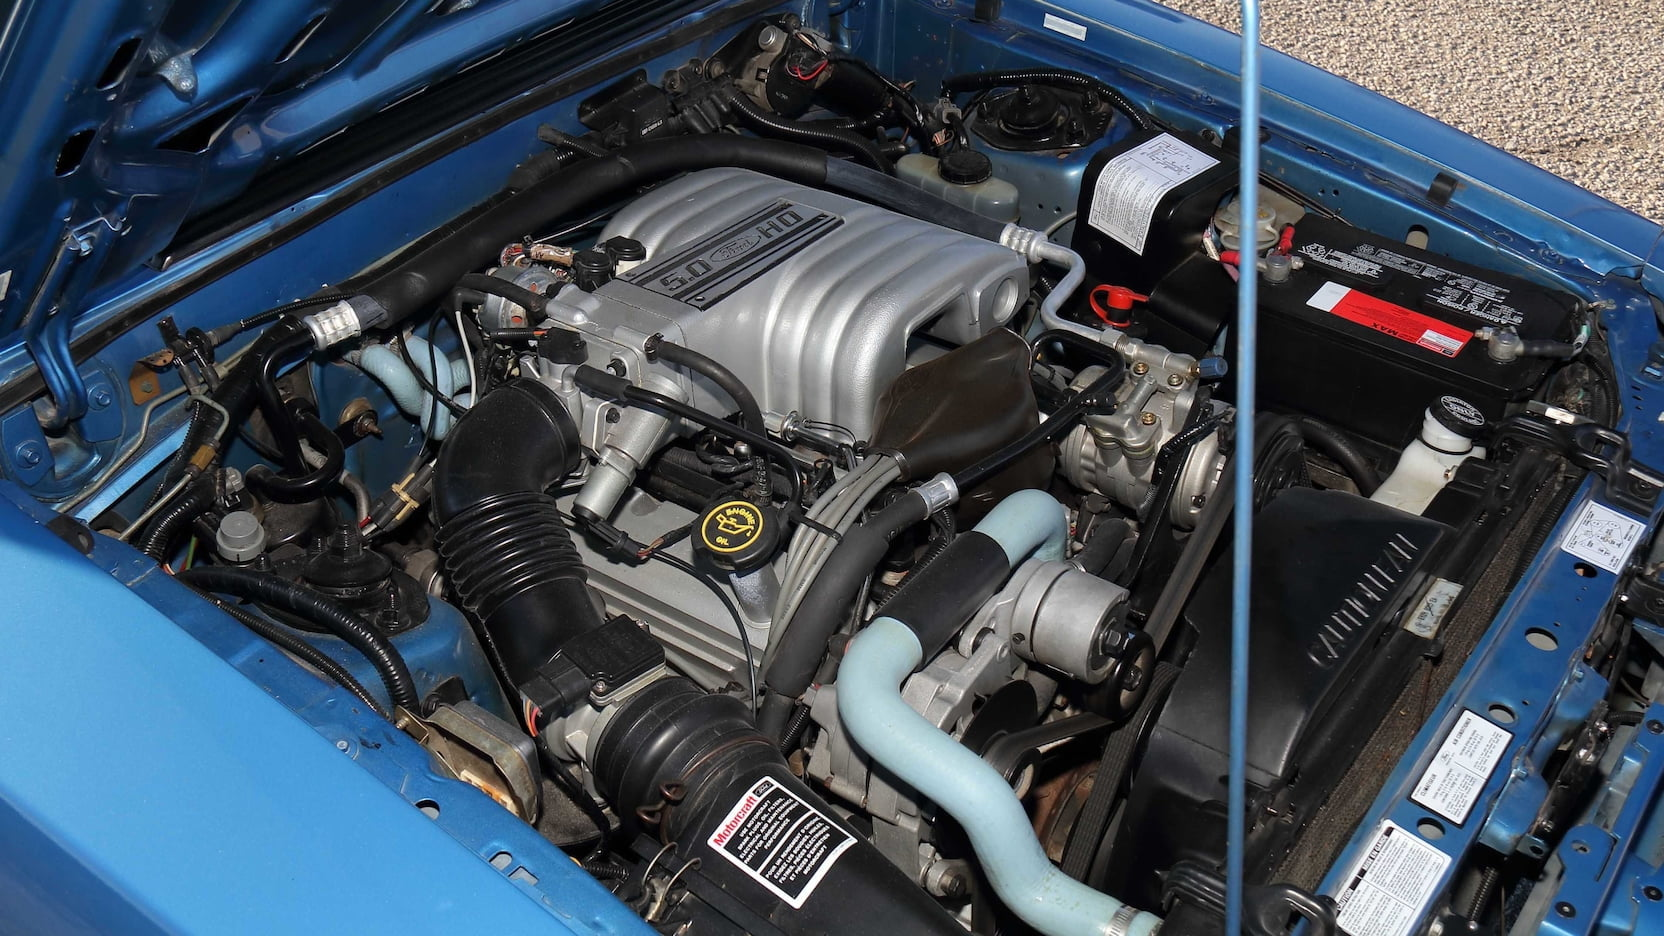 1989 Ford Mustang ssp police car engine